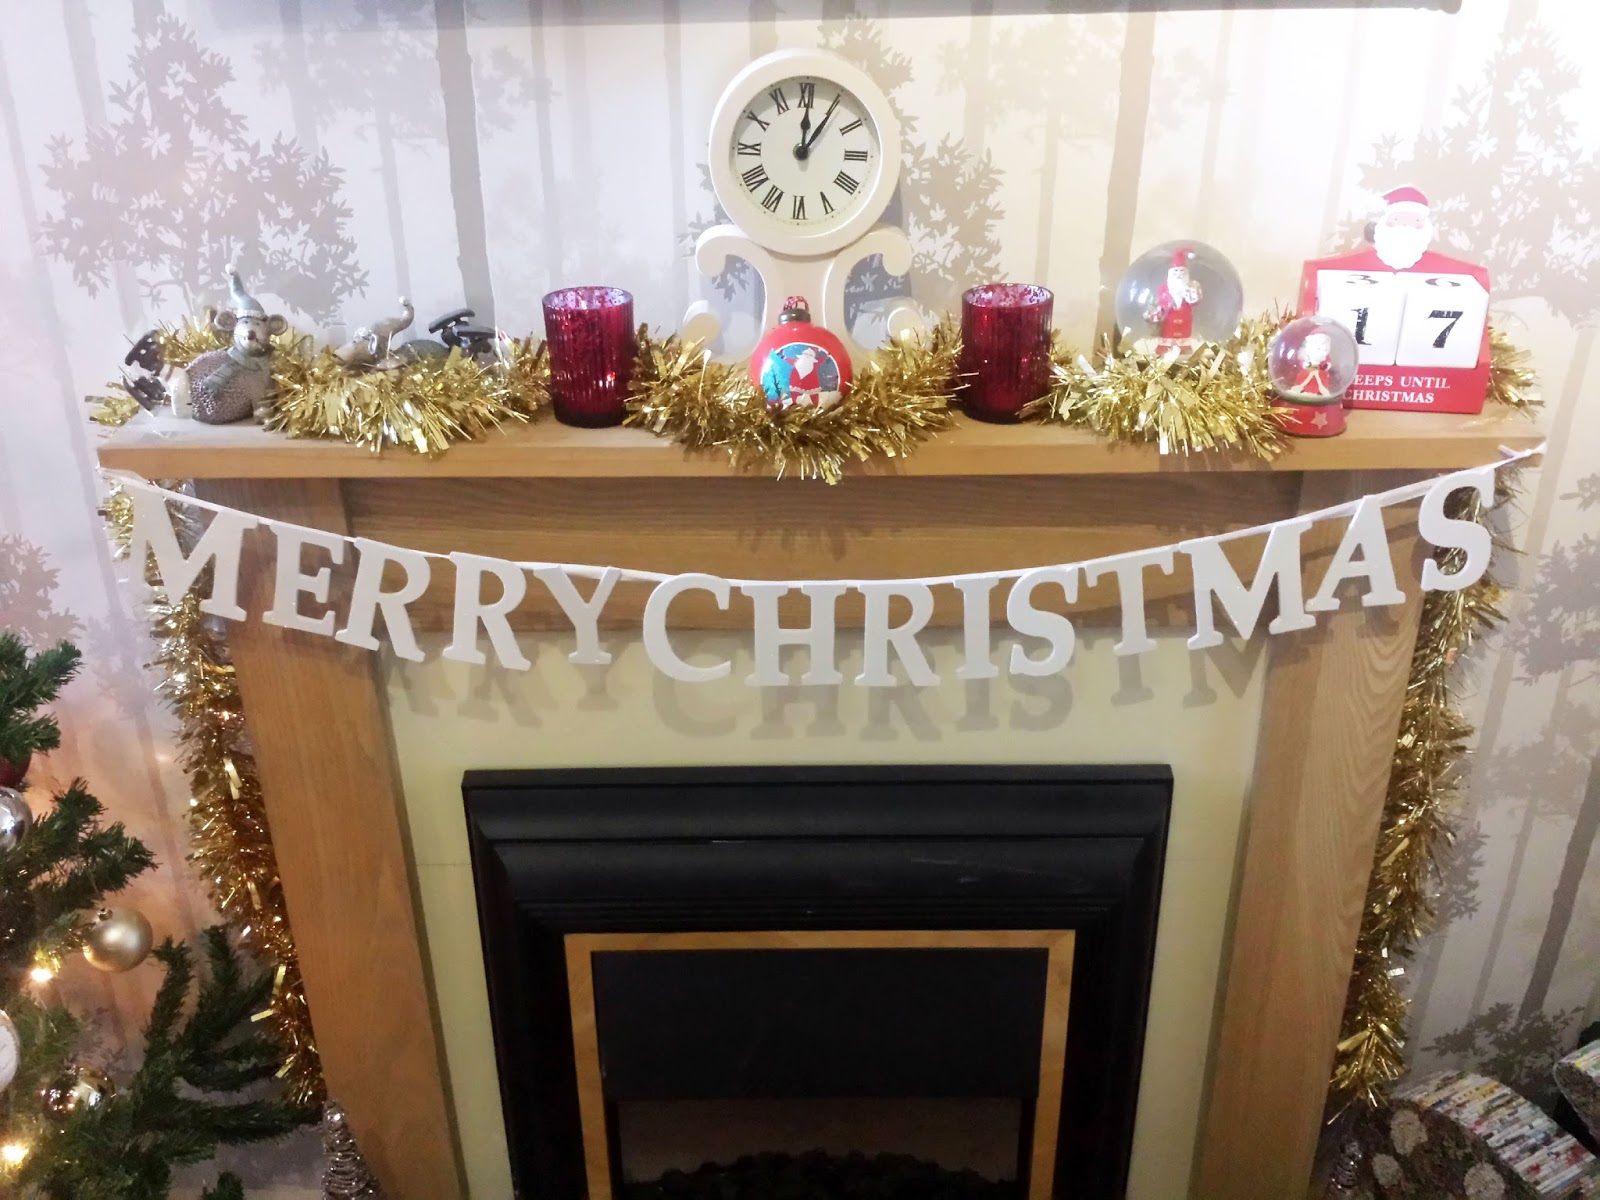 Decorating the Fireplace with Debenhams